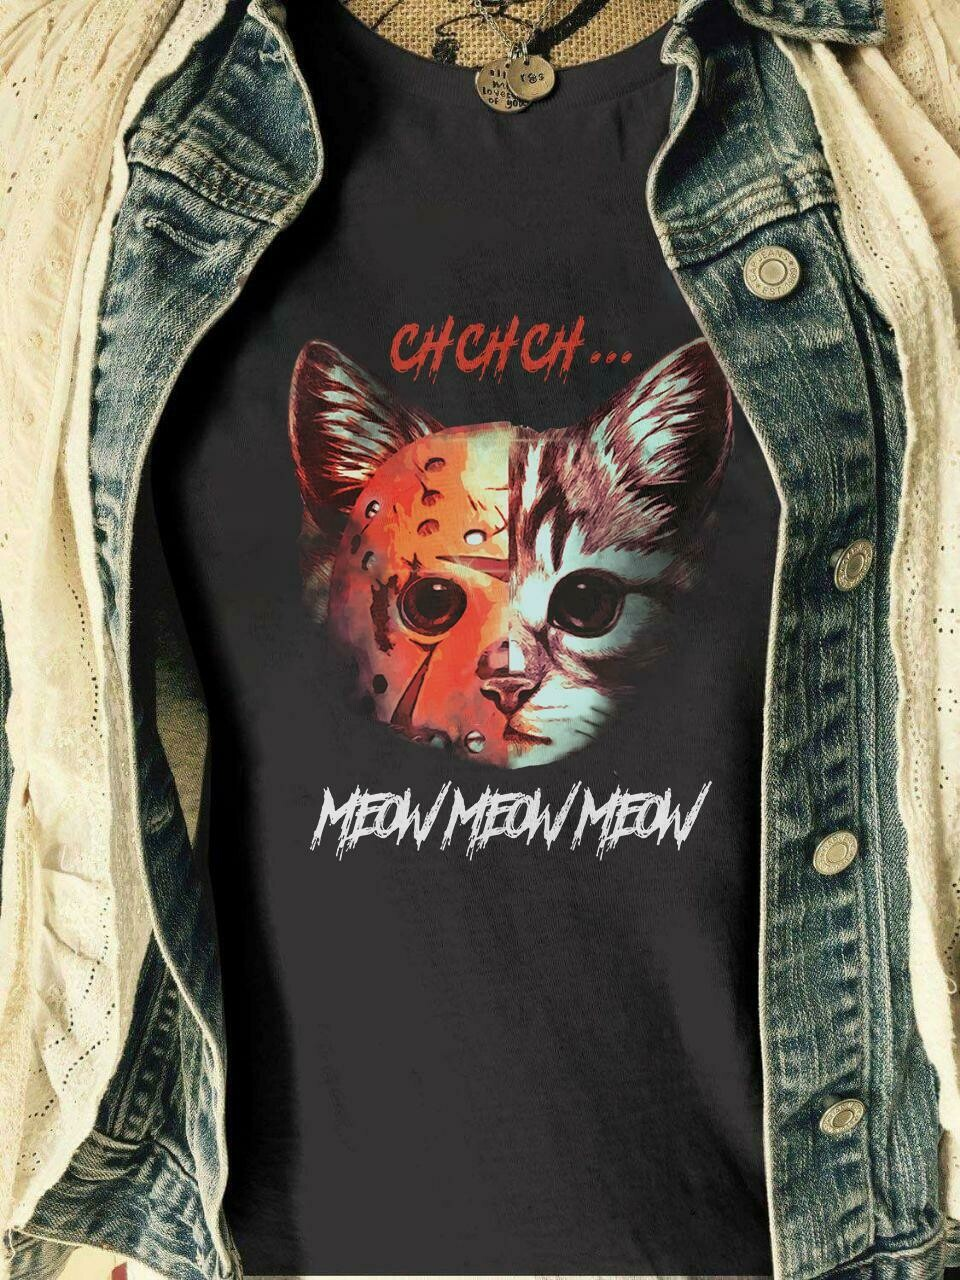 ChChCh Meow Meow Meow Halloween Horror Characters Squad Goals IT Joker Pennywise Chucky Ghostface T-Shirt, ChChCh Meow, Chucky Ghostface, Horror movie shirt, Freddy jason, Myers leatherface